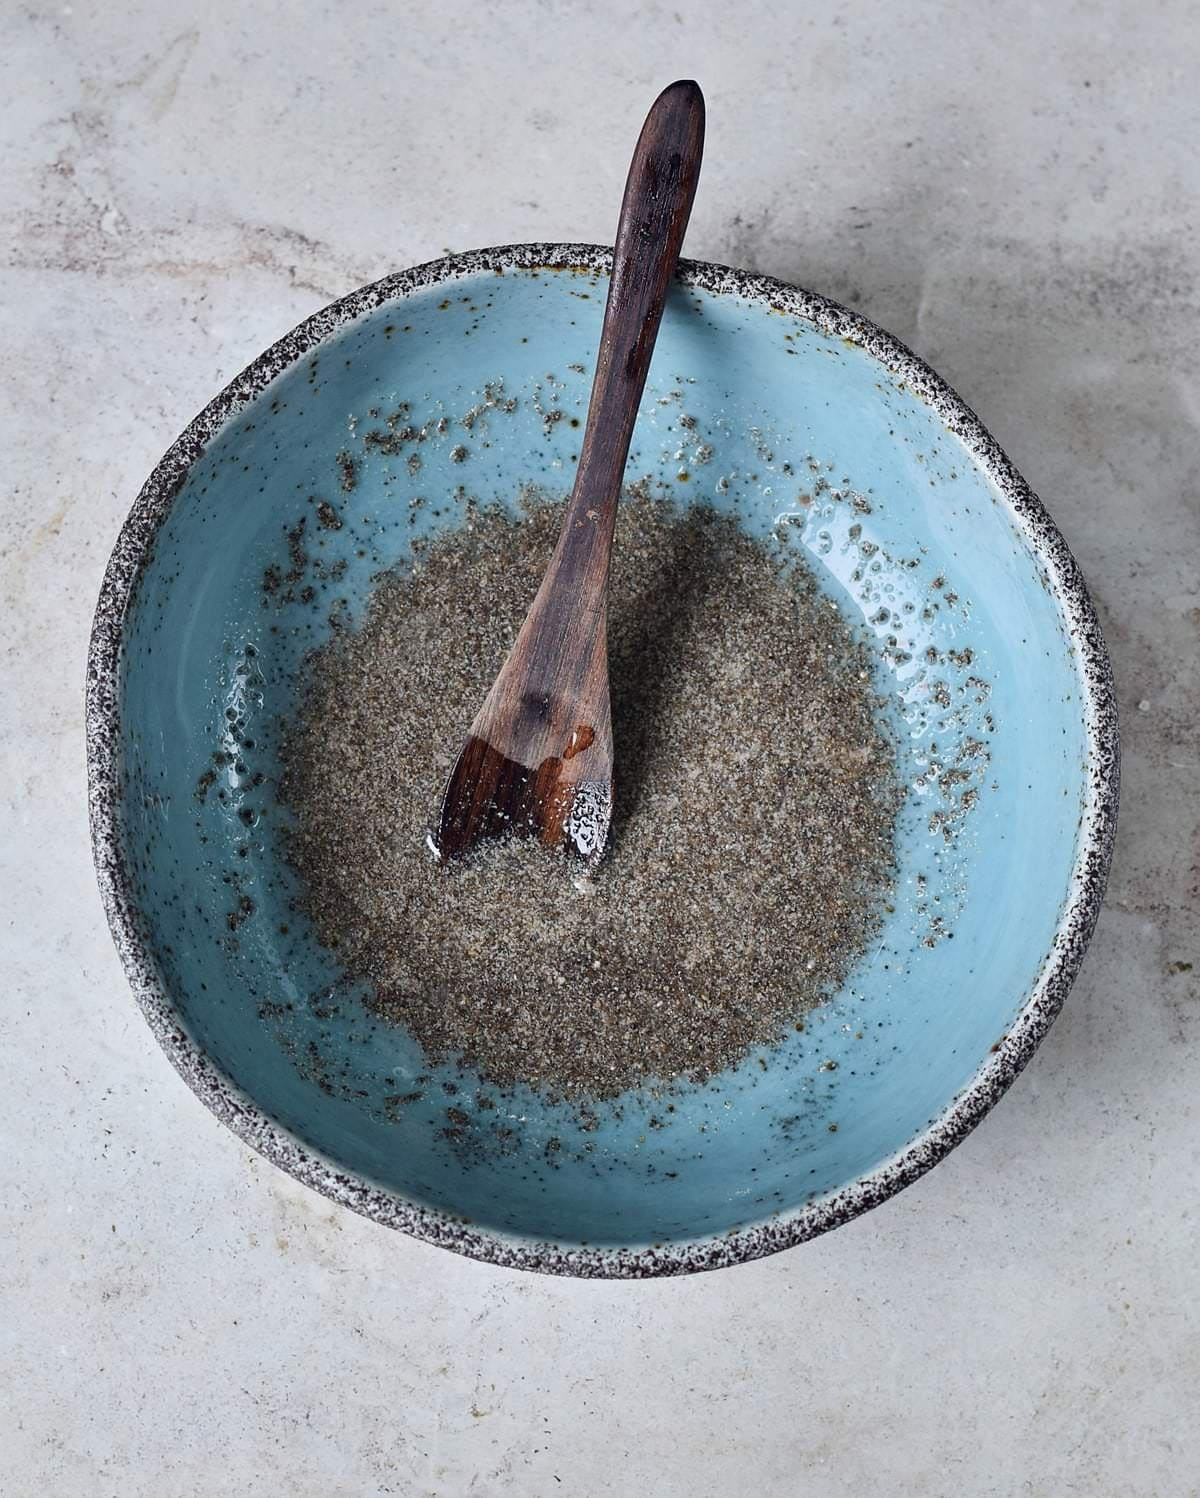 chia eggs in blue bowl with wooden spoon